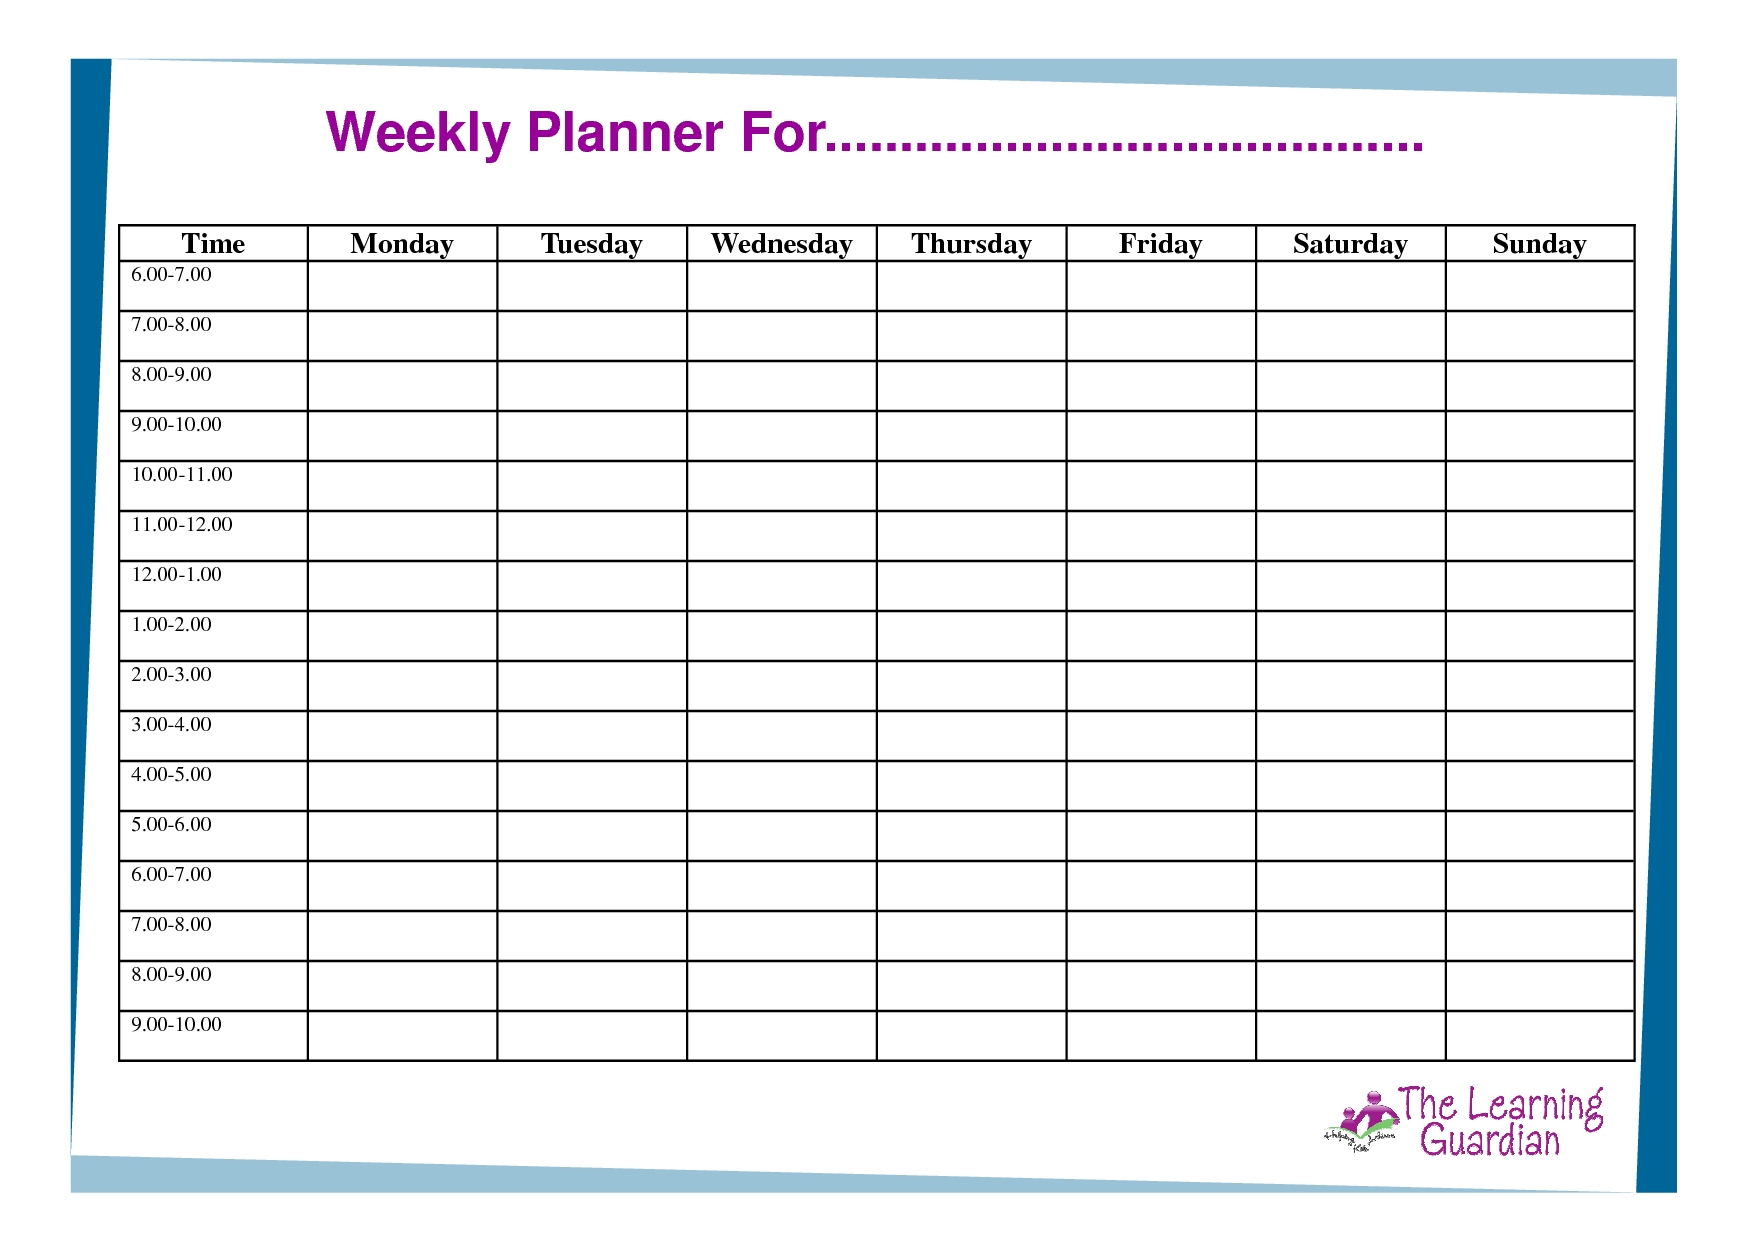 Printable Weekly Planner With Time Slots – Calendar Weekly Printable Calendar With Time Slots Free